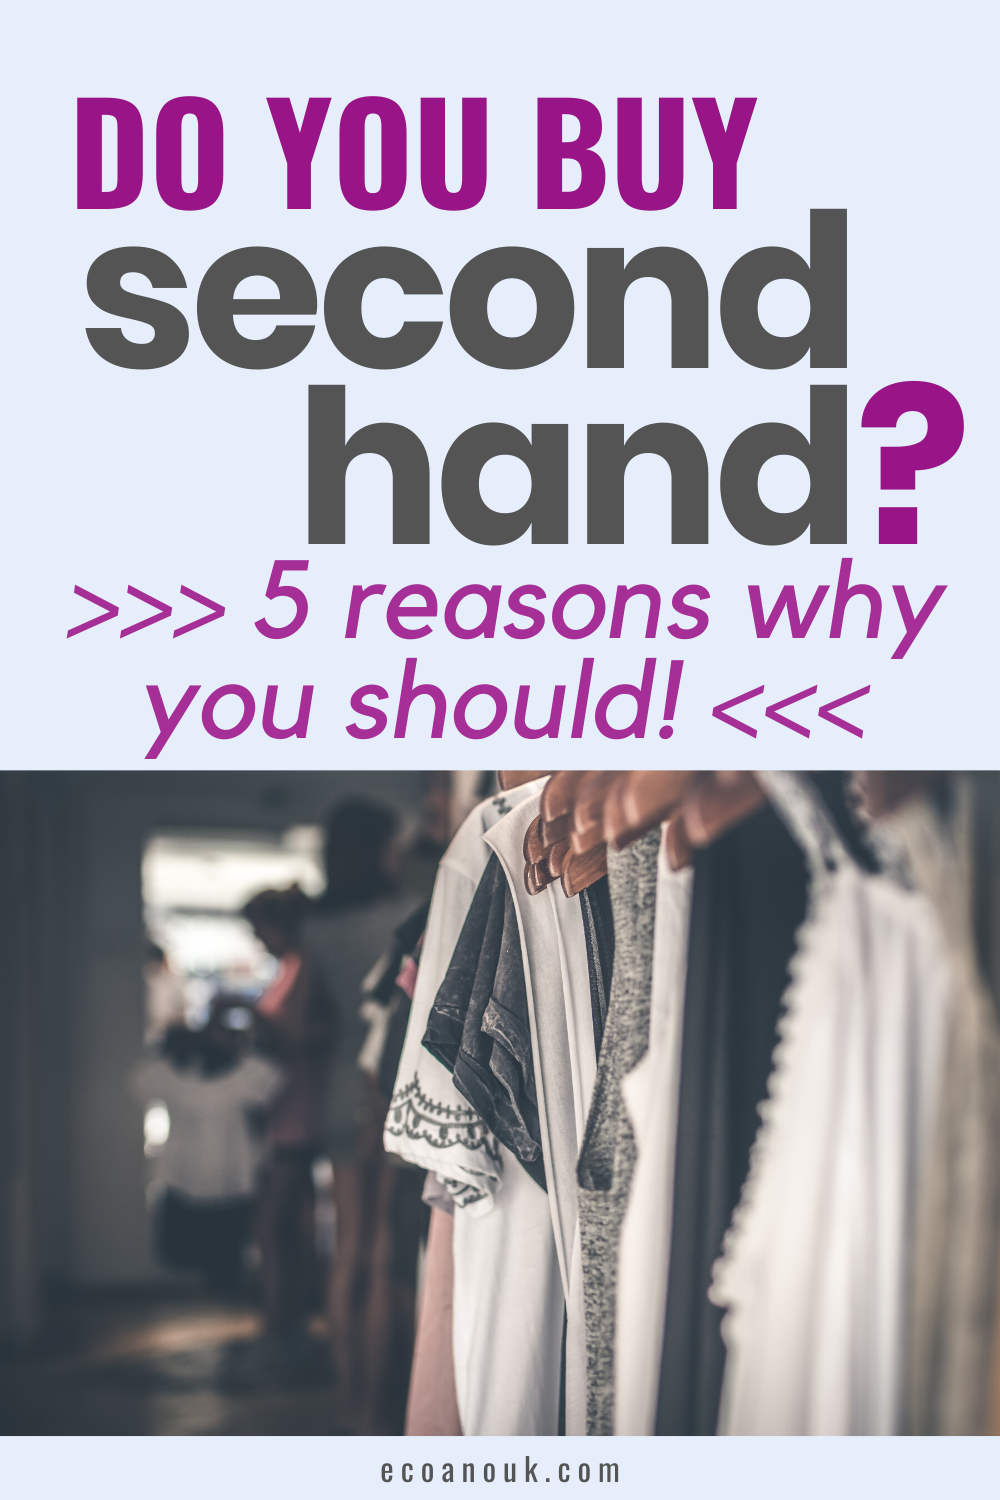 5 Reasons Why You Should Buy Secondhand Clothes Eco Anouk In 2020 Slow Fashion Second Hand Clothes Ethical Sustainable Fashion